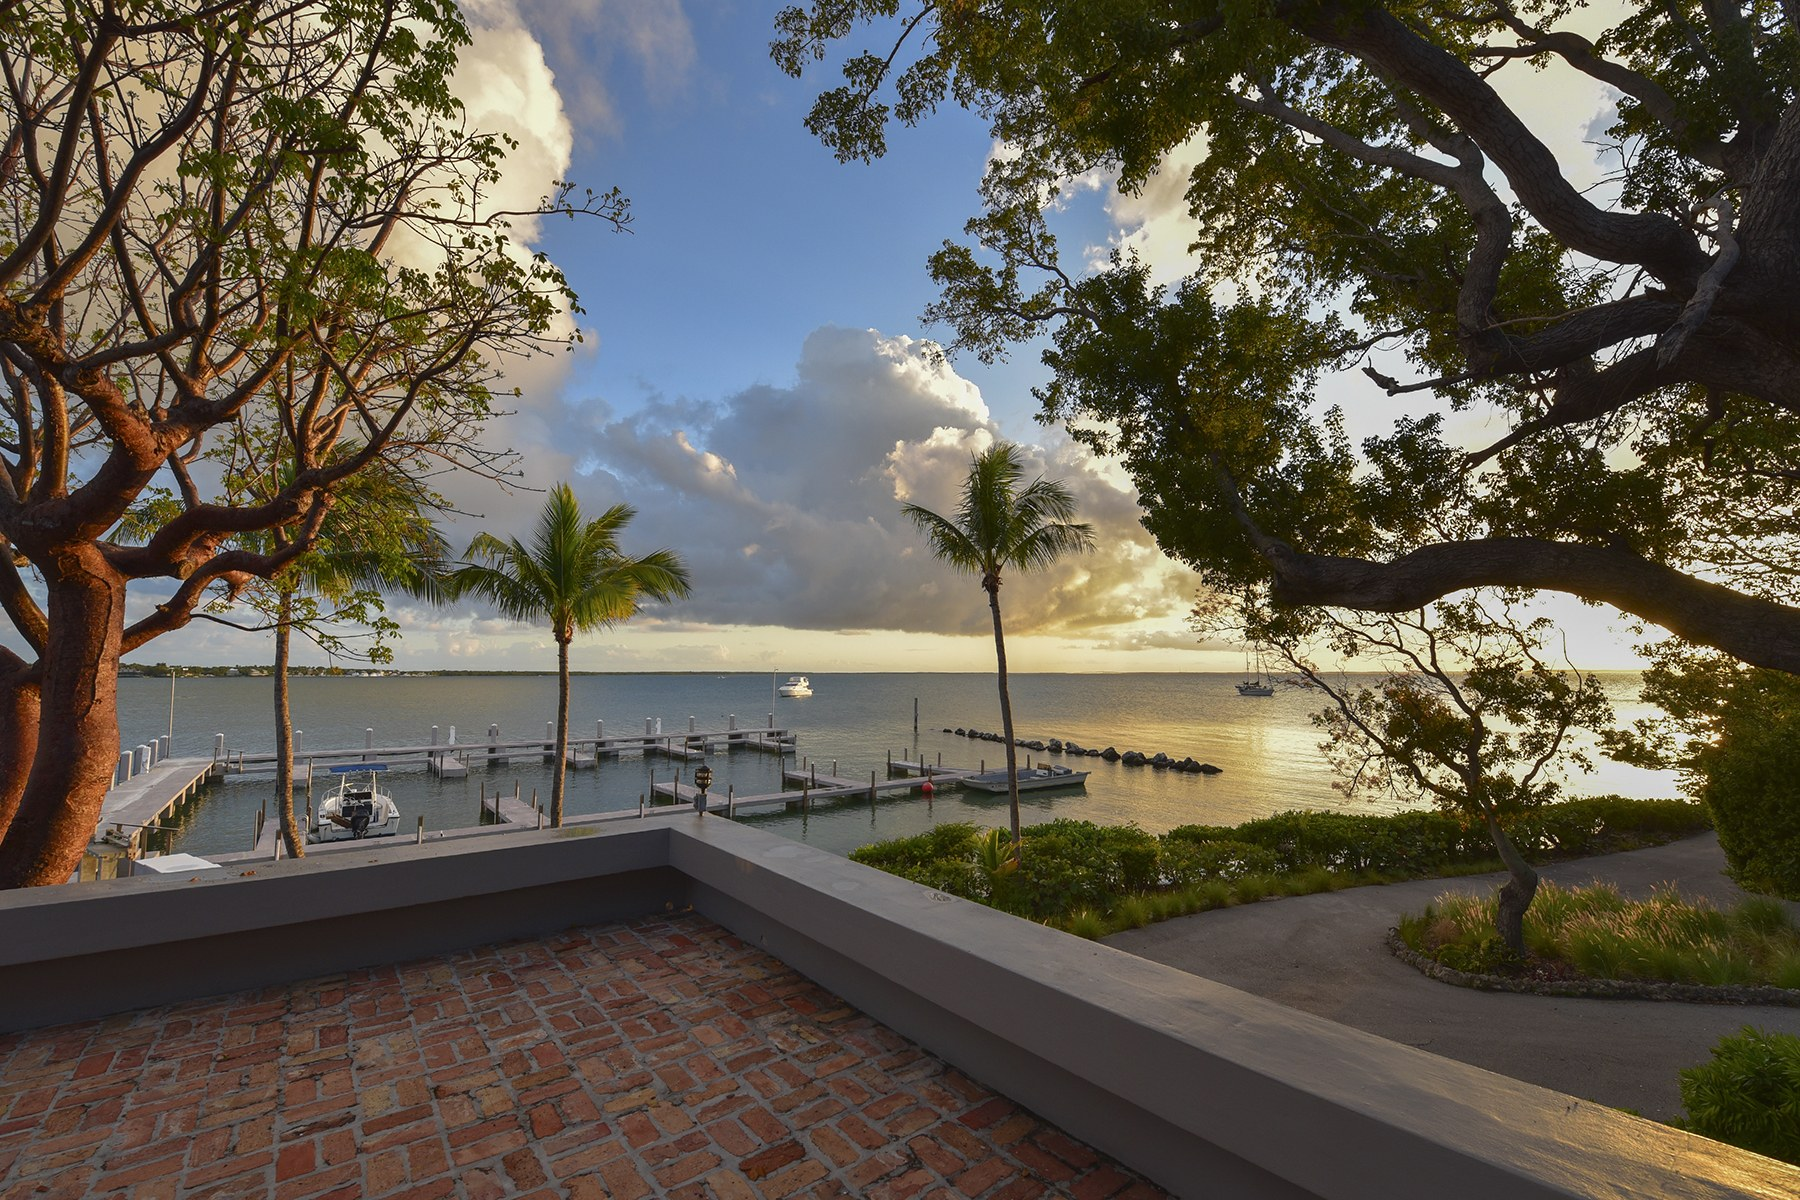 Additional photo for property listing at Pumpkin Key - Private Island, Key Largo, FL  Key Largo, Florida 33037 Estados Unidos